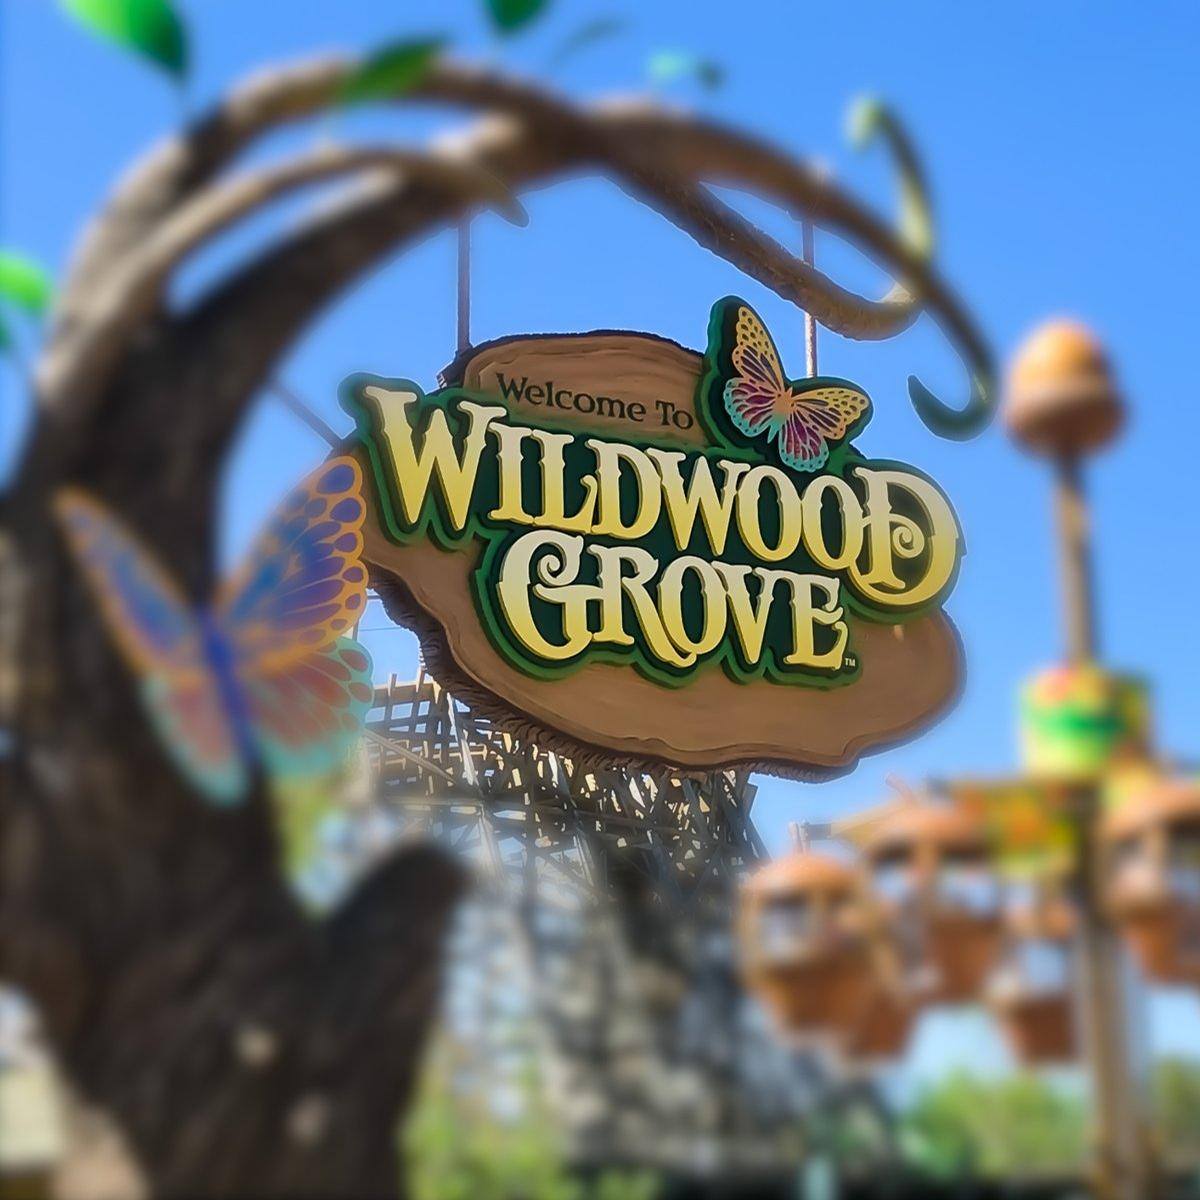 Wildwood Grove is the first expansion of the theme park since 2008 / Dollywood via Twitter